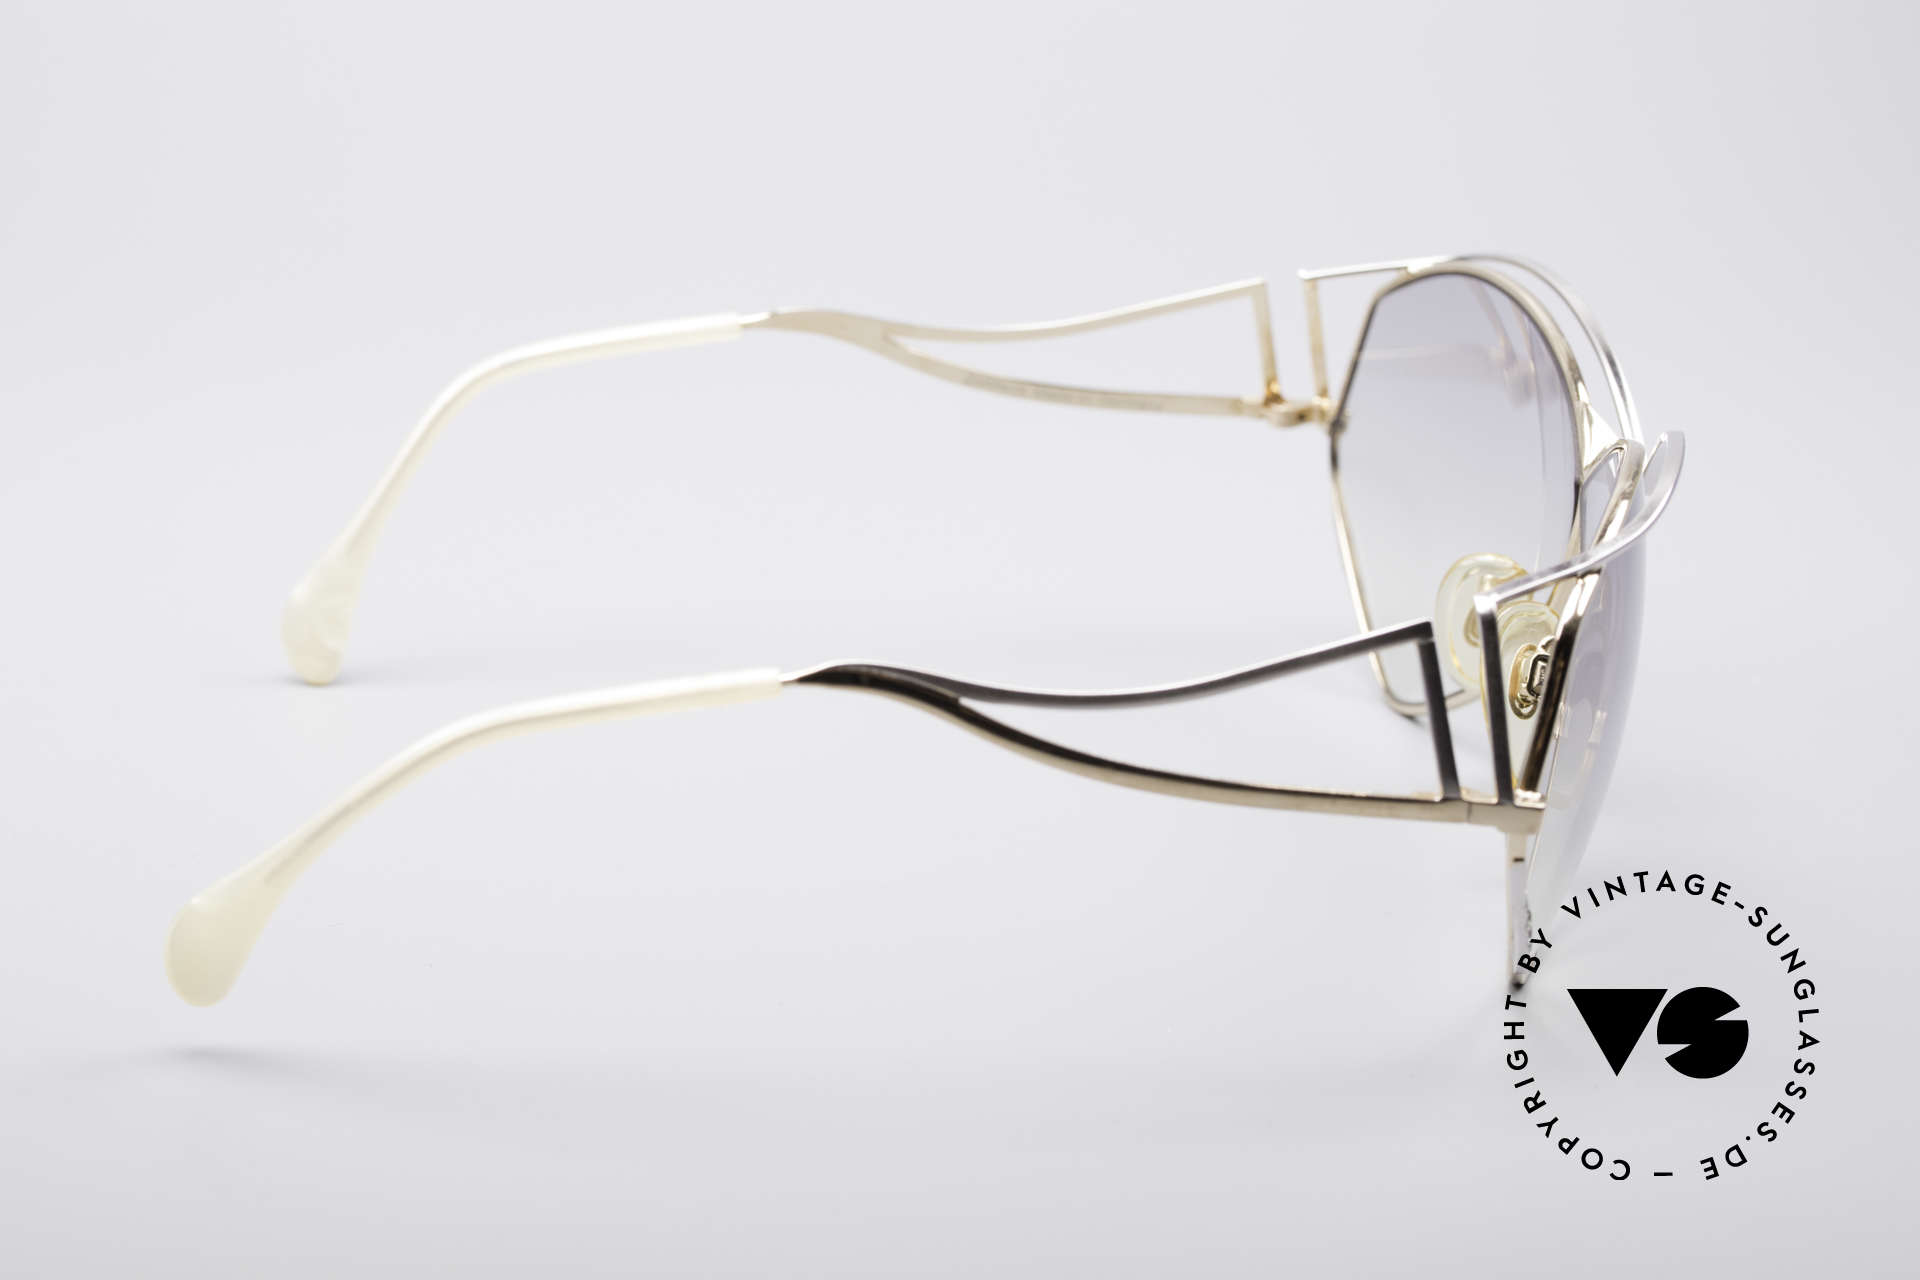 Zollitsch Navette Princess Sunglasses, unworn (like all our rare vintage Zollitsch glasses), Made for Women